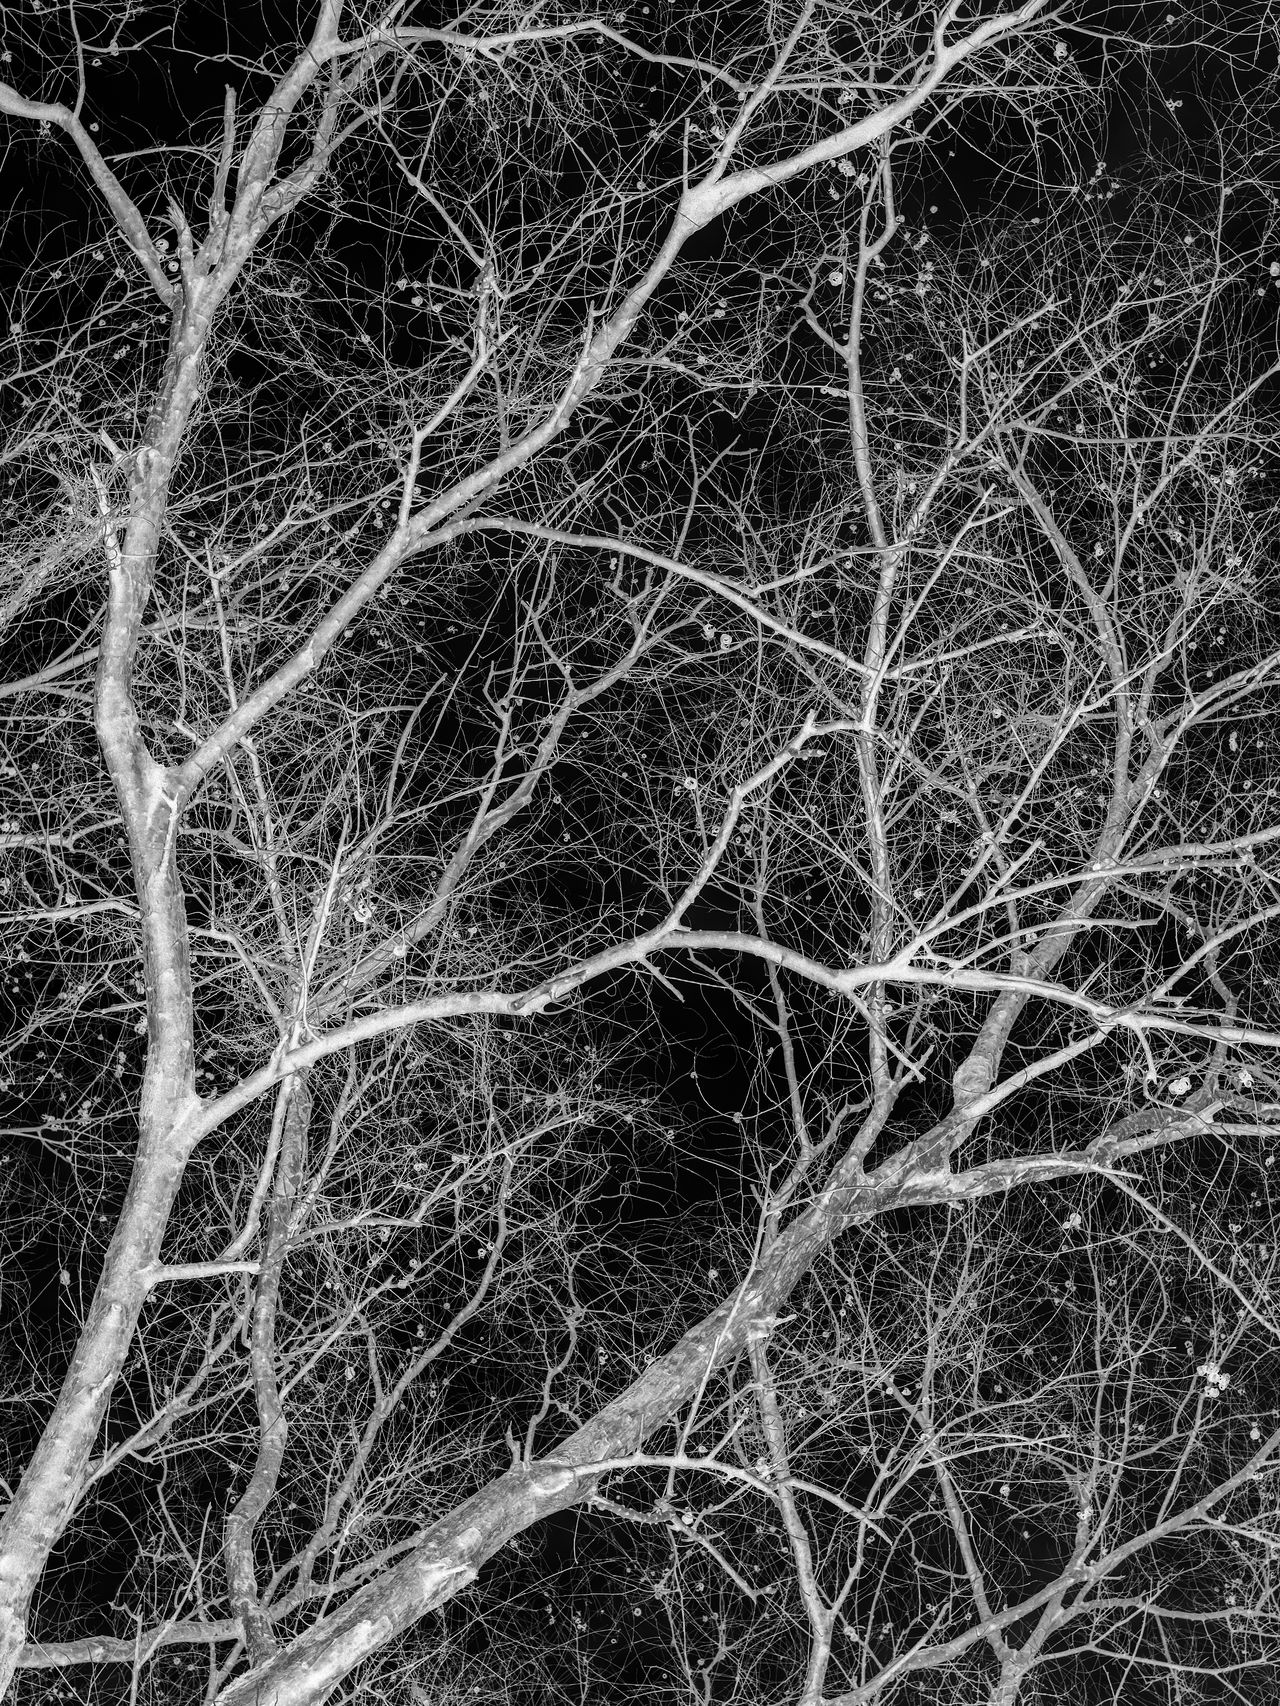 Low angle view of silhouette of bare trees and dry parasitic vines covering the canopy. In black and white. Abstract Artistic Black And White Branches Dependency Died High Contrast Life Low Angle View Parasitic Plant Relationships Silhouette Vine Withered